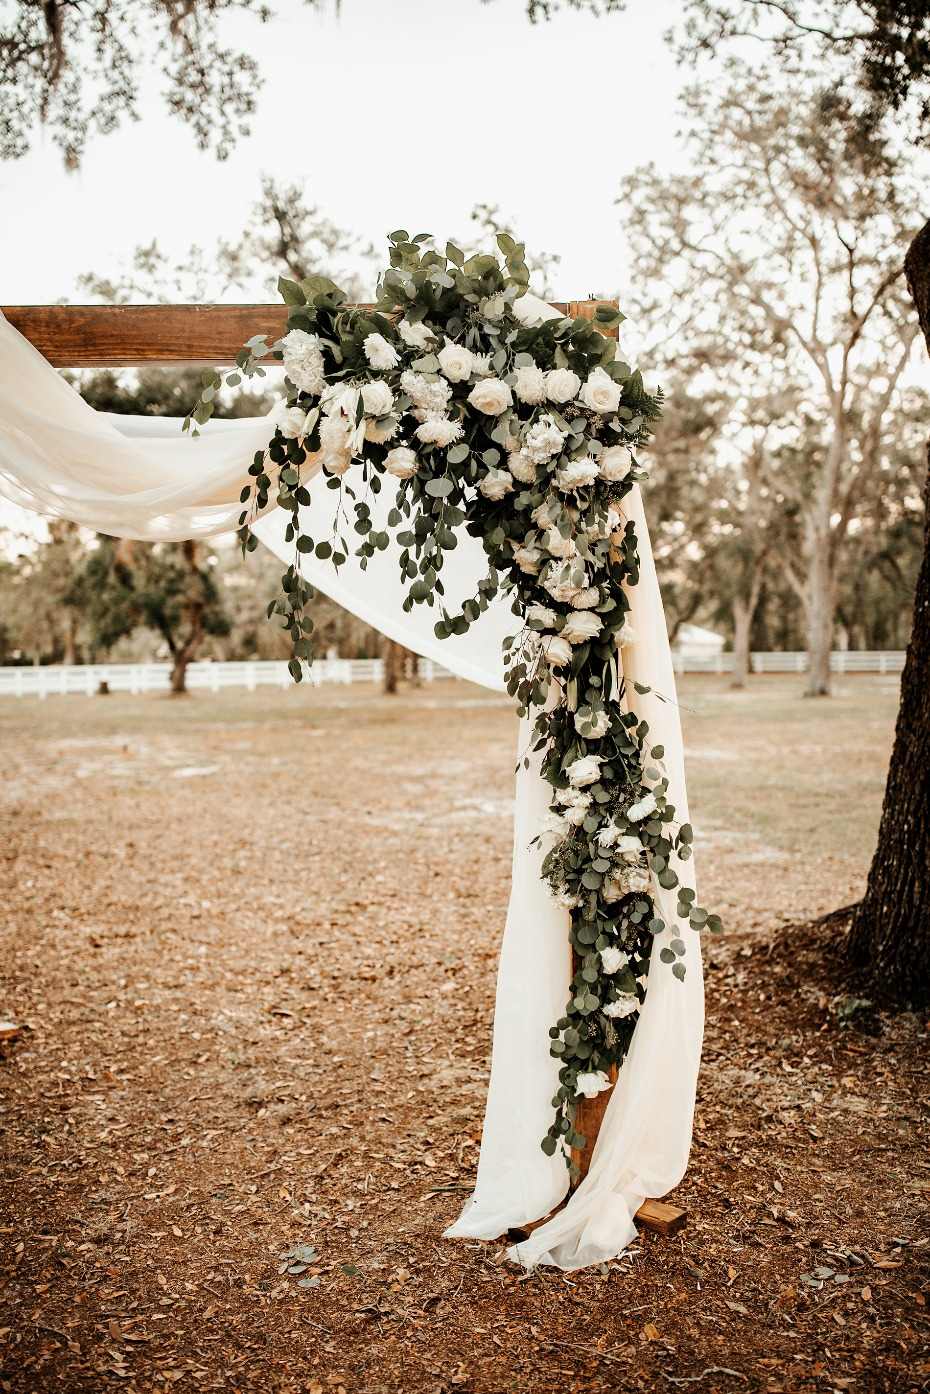 Floral wedding arch with draped fabric